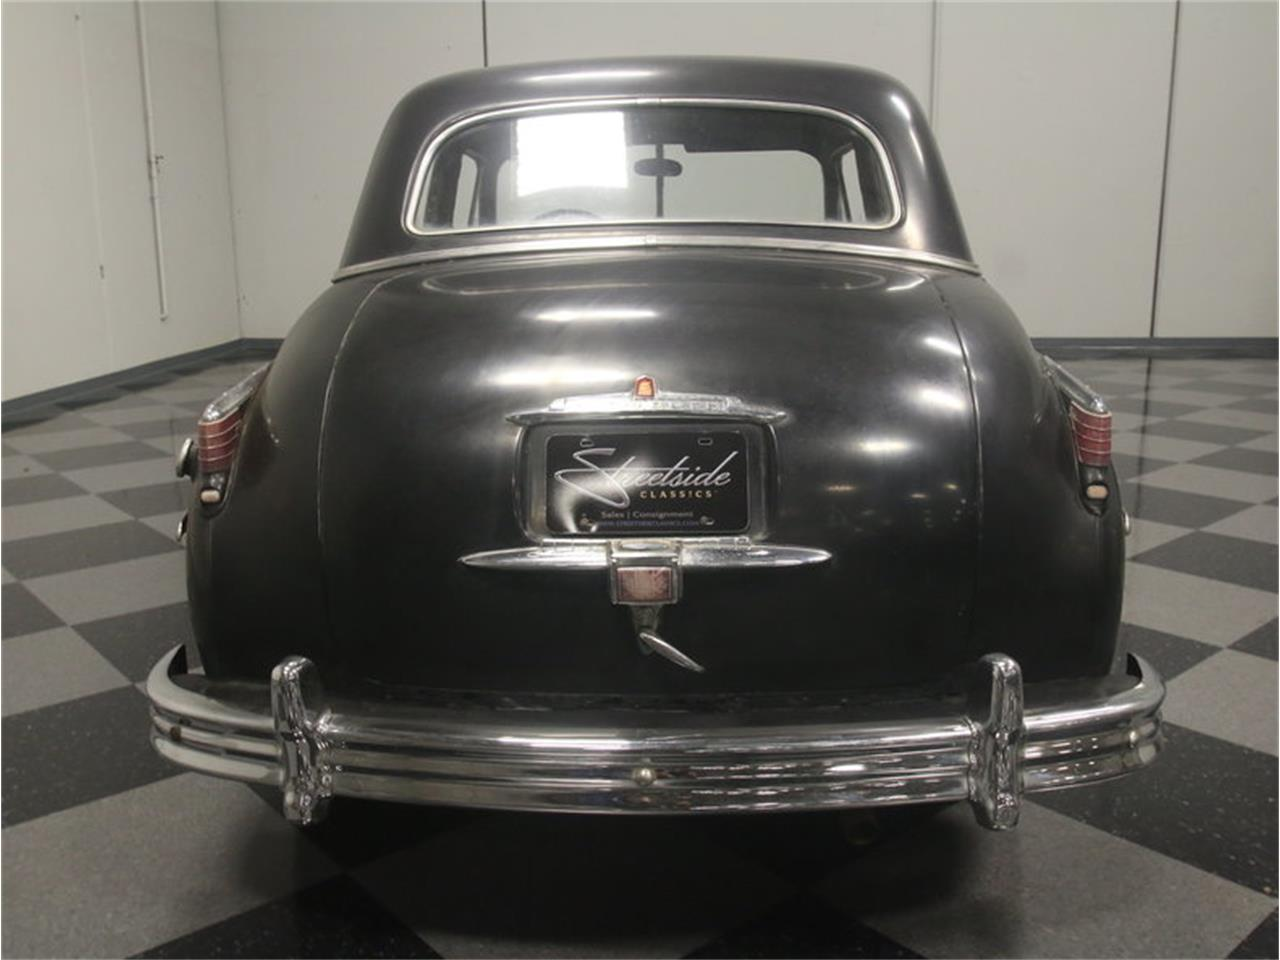 Large Picture of '49 Special Deluxe located in Lithia Springs Georgia - $8,995.00 - L551